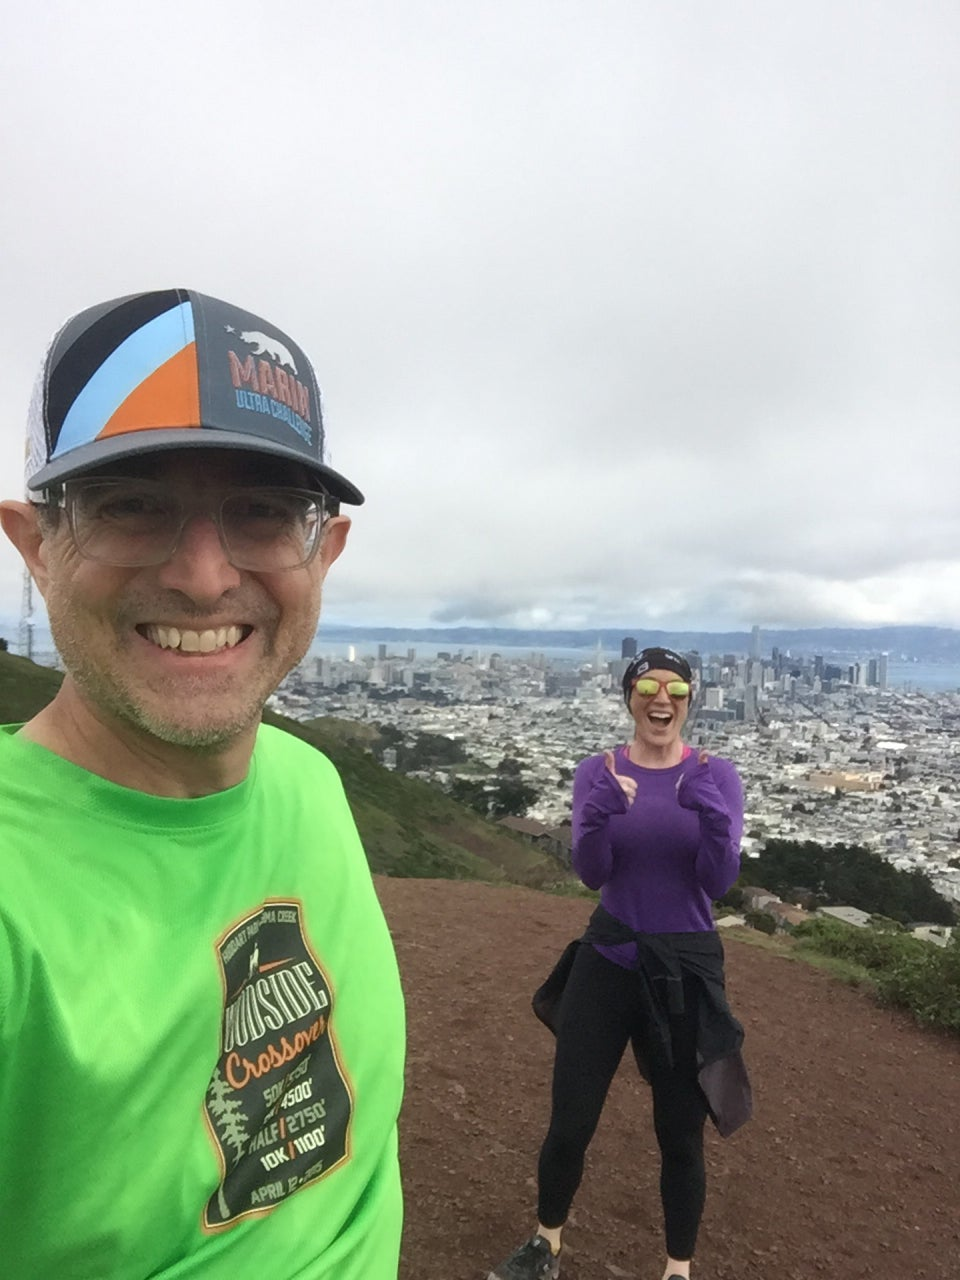 Tantek and Courtney smiling, more than six feet apart from each other, on top of the North Peak of Twin Peaks, with downtown San Francisco in the distance behind them.